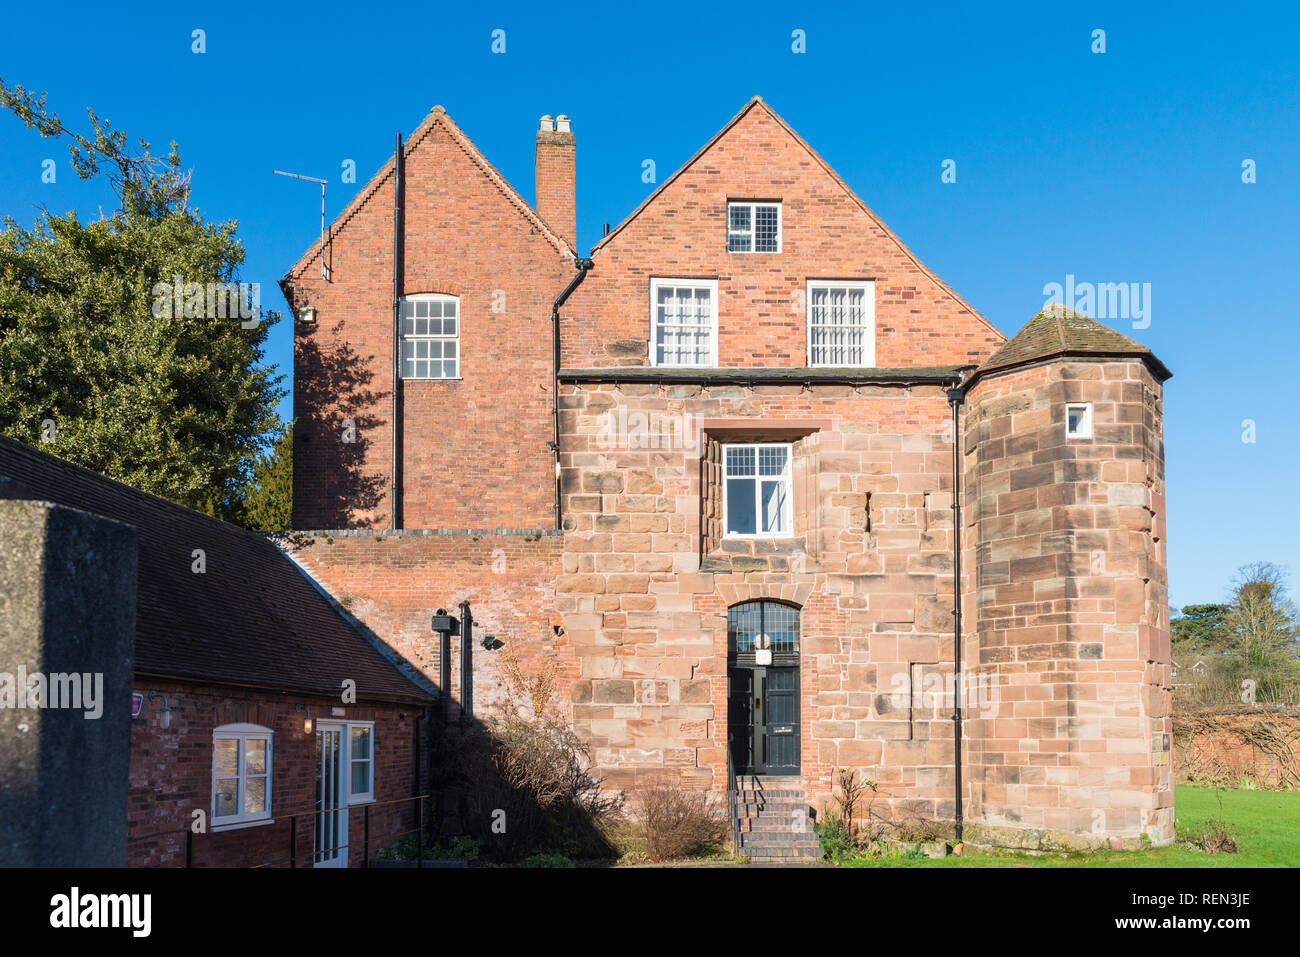 St Mary's House, part of Lichfield Diocese next to the Cathedral - Stock Image